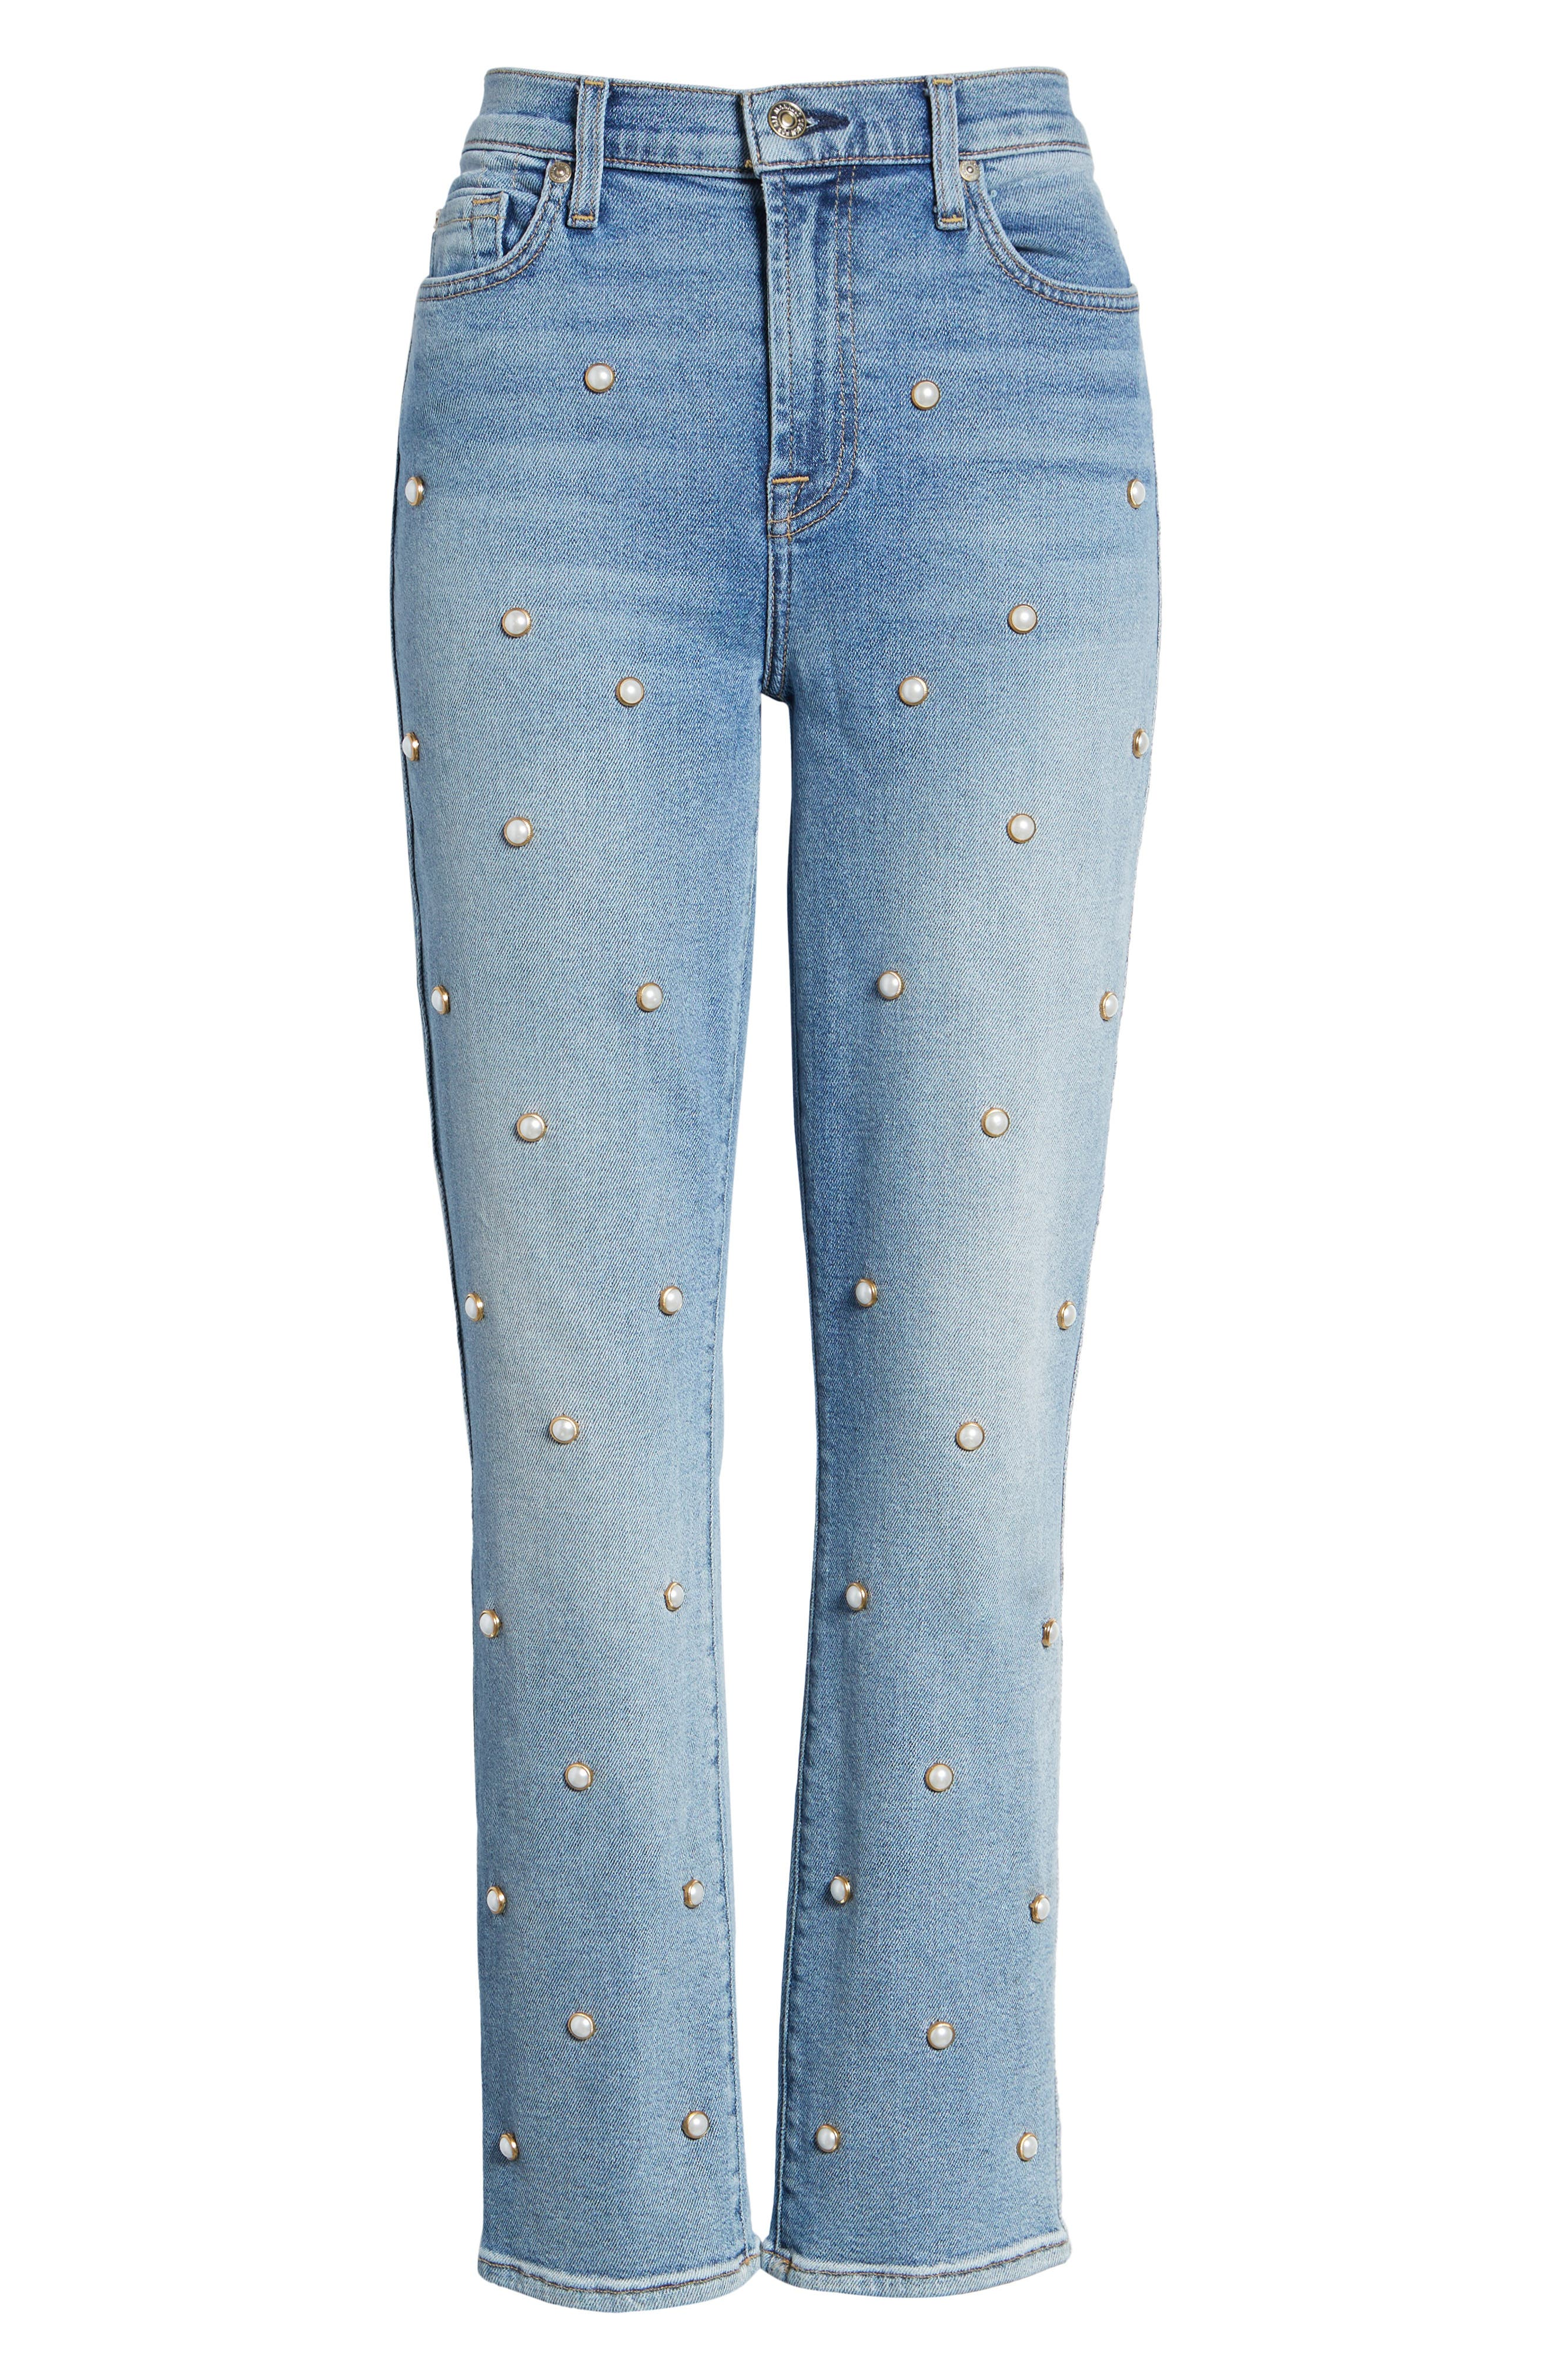 7 FOR ALL MANKIND<SUP>®</SUP>, Edie Faux Pearl Detail Ankle Jeans, Alternate thumbnail 7, color, LUXE VINTAGE FLORA